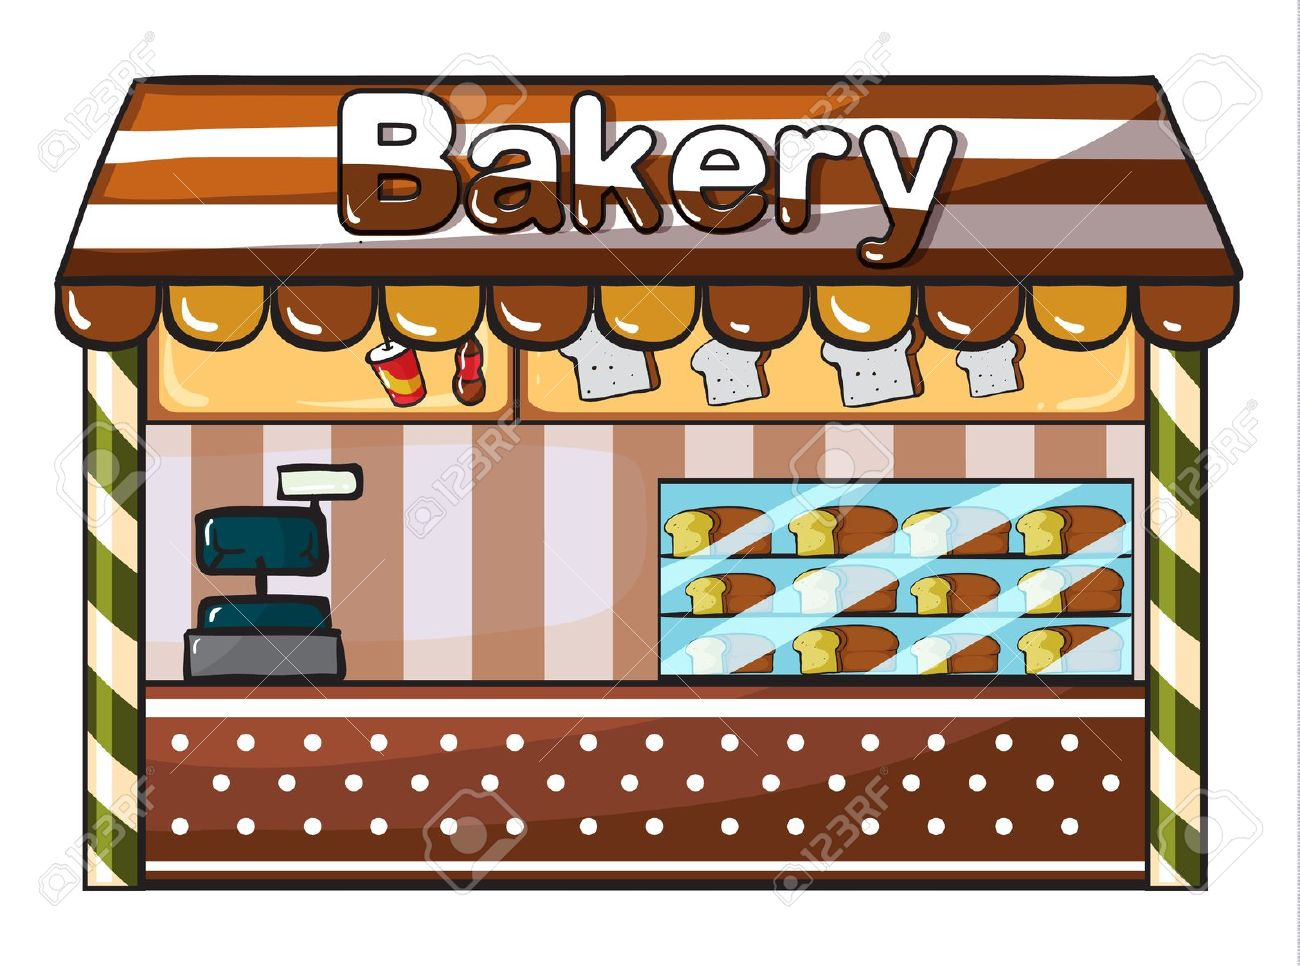 Building station . Bakery clipart bakery shop